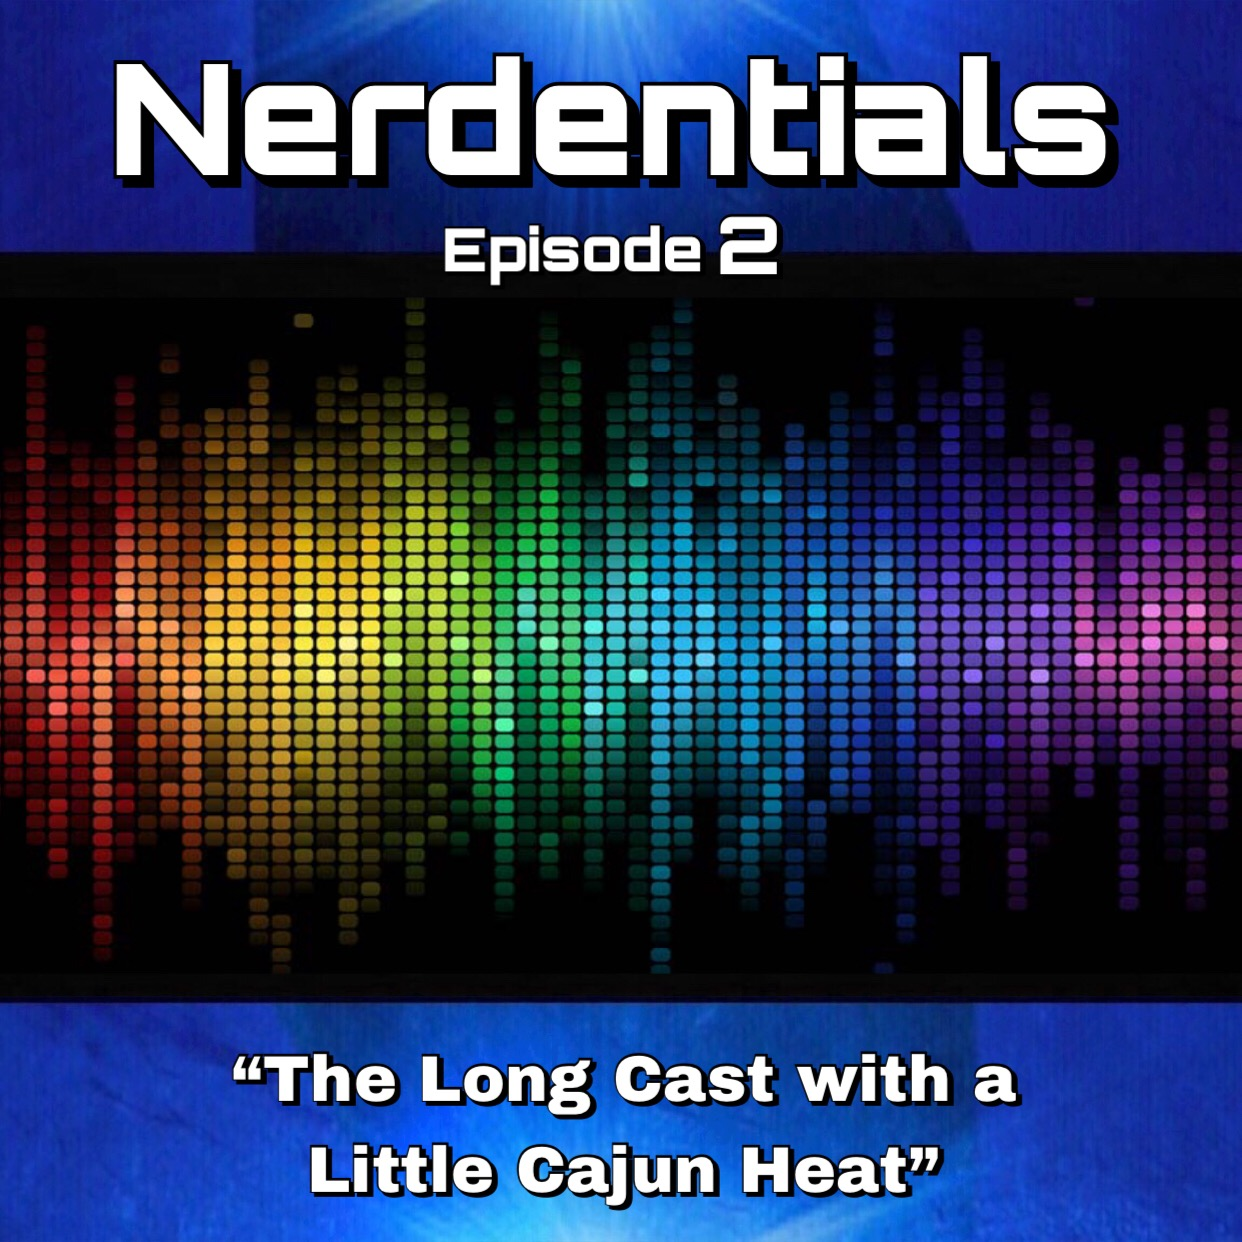 - Sit back for a long cast this time around as our friend CauCajun Saint from Geekologist Radio joins us in our discussions!First up its:Movie Matters with Logan and Beauty and the Beasts reviews.Then We Hit up TV Talk and take a look at the Netflix Original Series Iron Fist and our first impressions. Then we Finish the last half of the cast with:Gaming Bits. We dive into each guys game of the week with The Legend of Zelda: Breath of the Wild, Final Fantasy 15 and Mass Effect Andromeda then we finally wrap it all up withWhat's Coming Up:We peel back the layers and details on a couple sequels: Injustice 2 and Middle Earth: Shadows of War and a little bit of Destiny 2 Chatter.